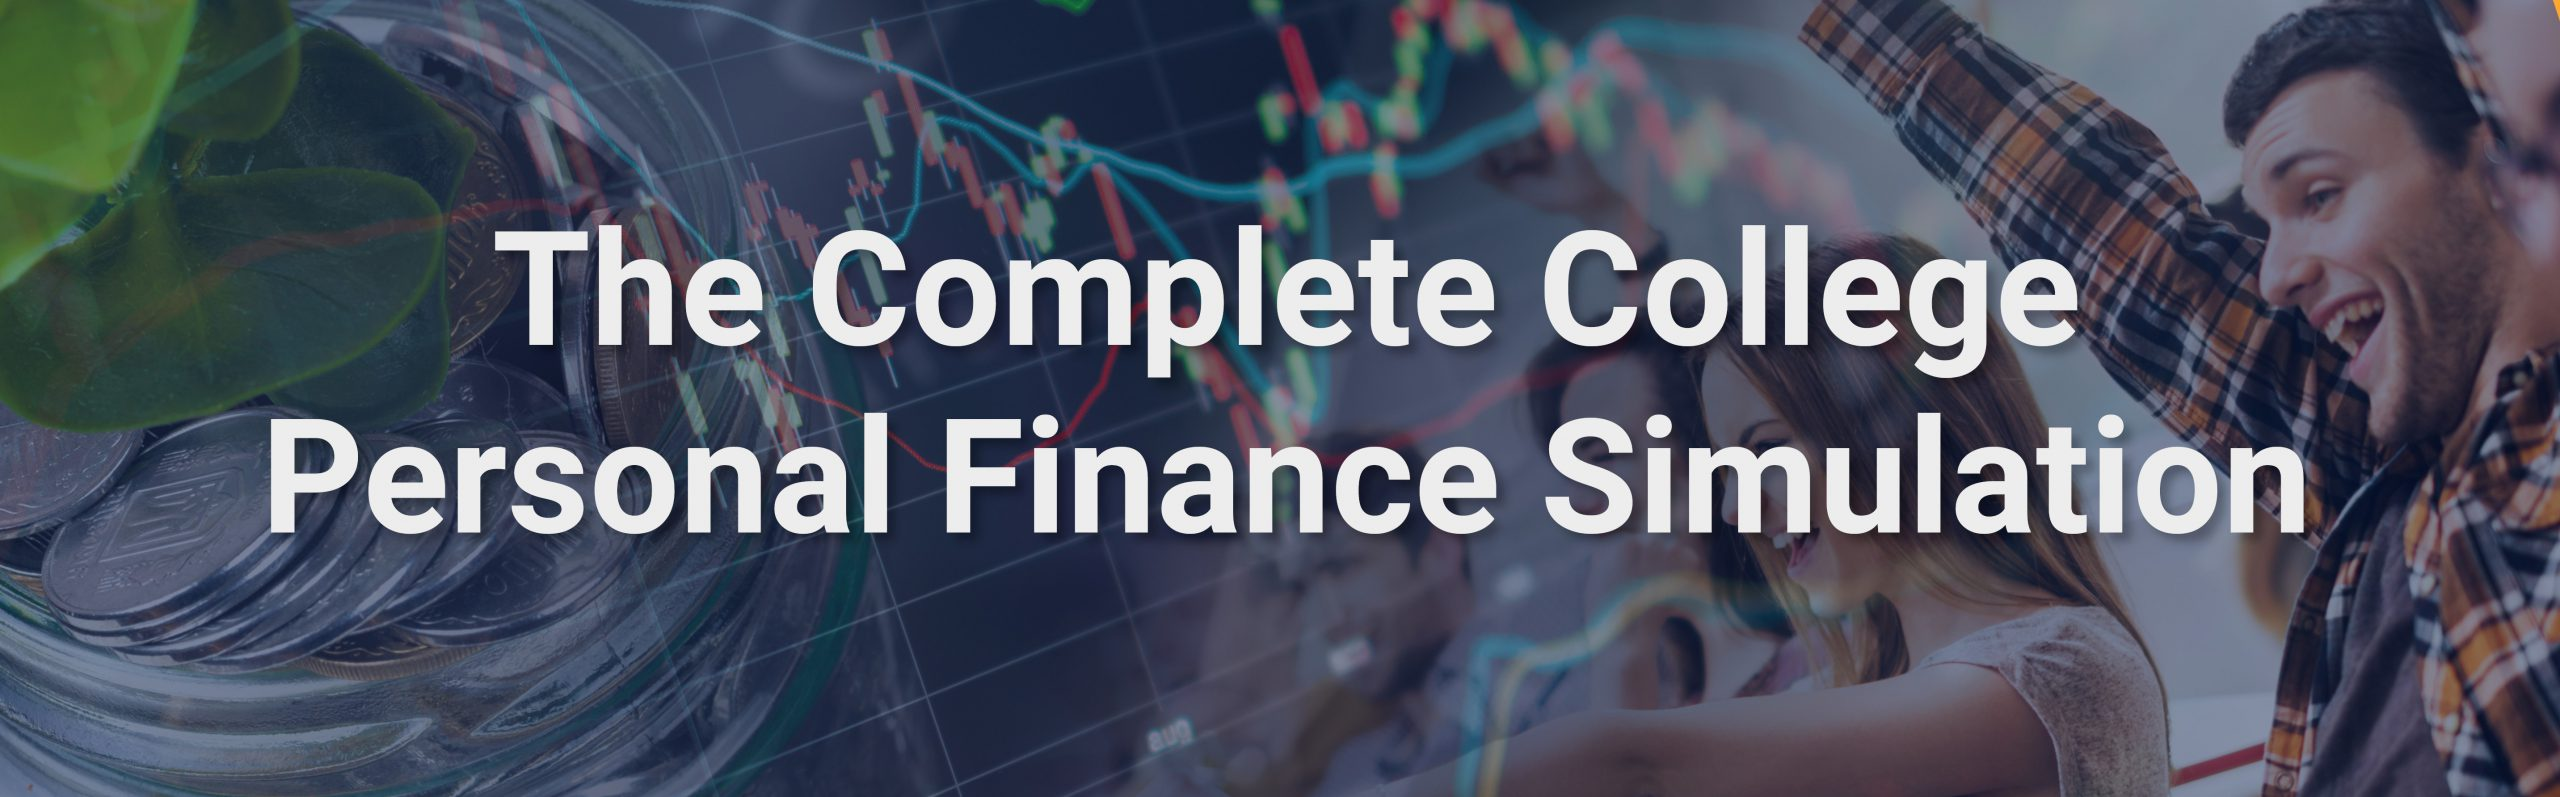 The Complete College Personal Finance Simulation